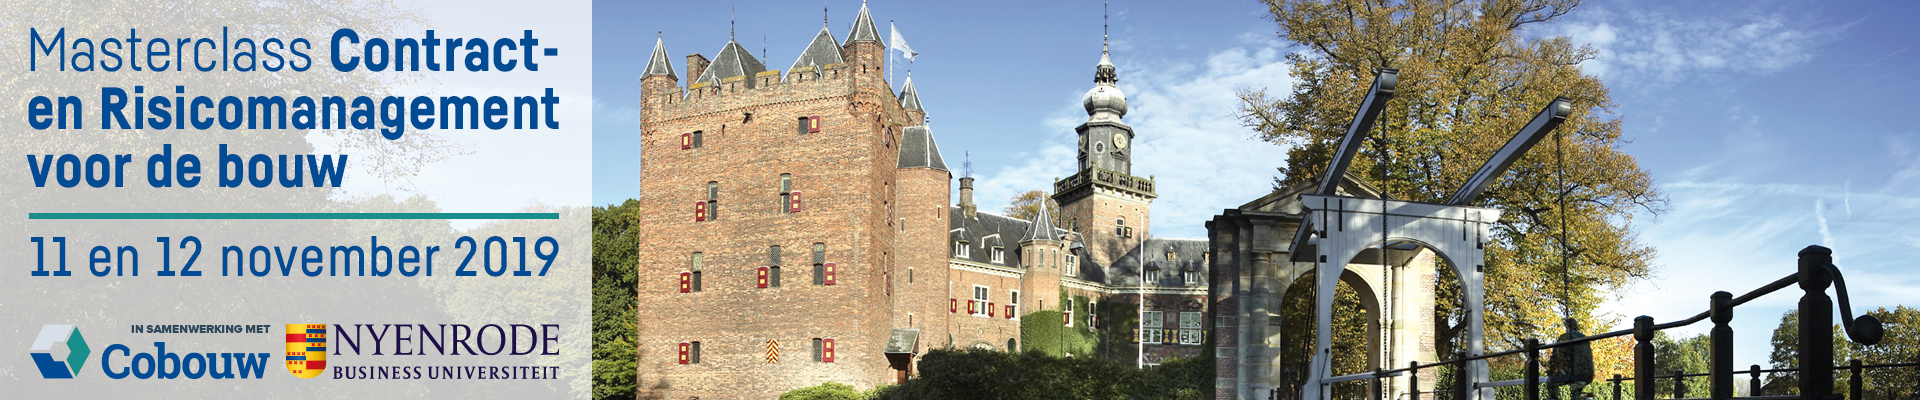 Nyenrode Contract- en risicomanagement 11 & 12 november